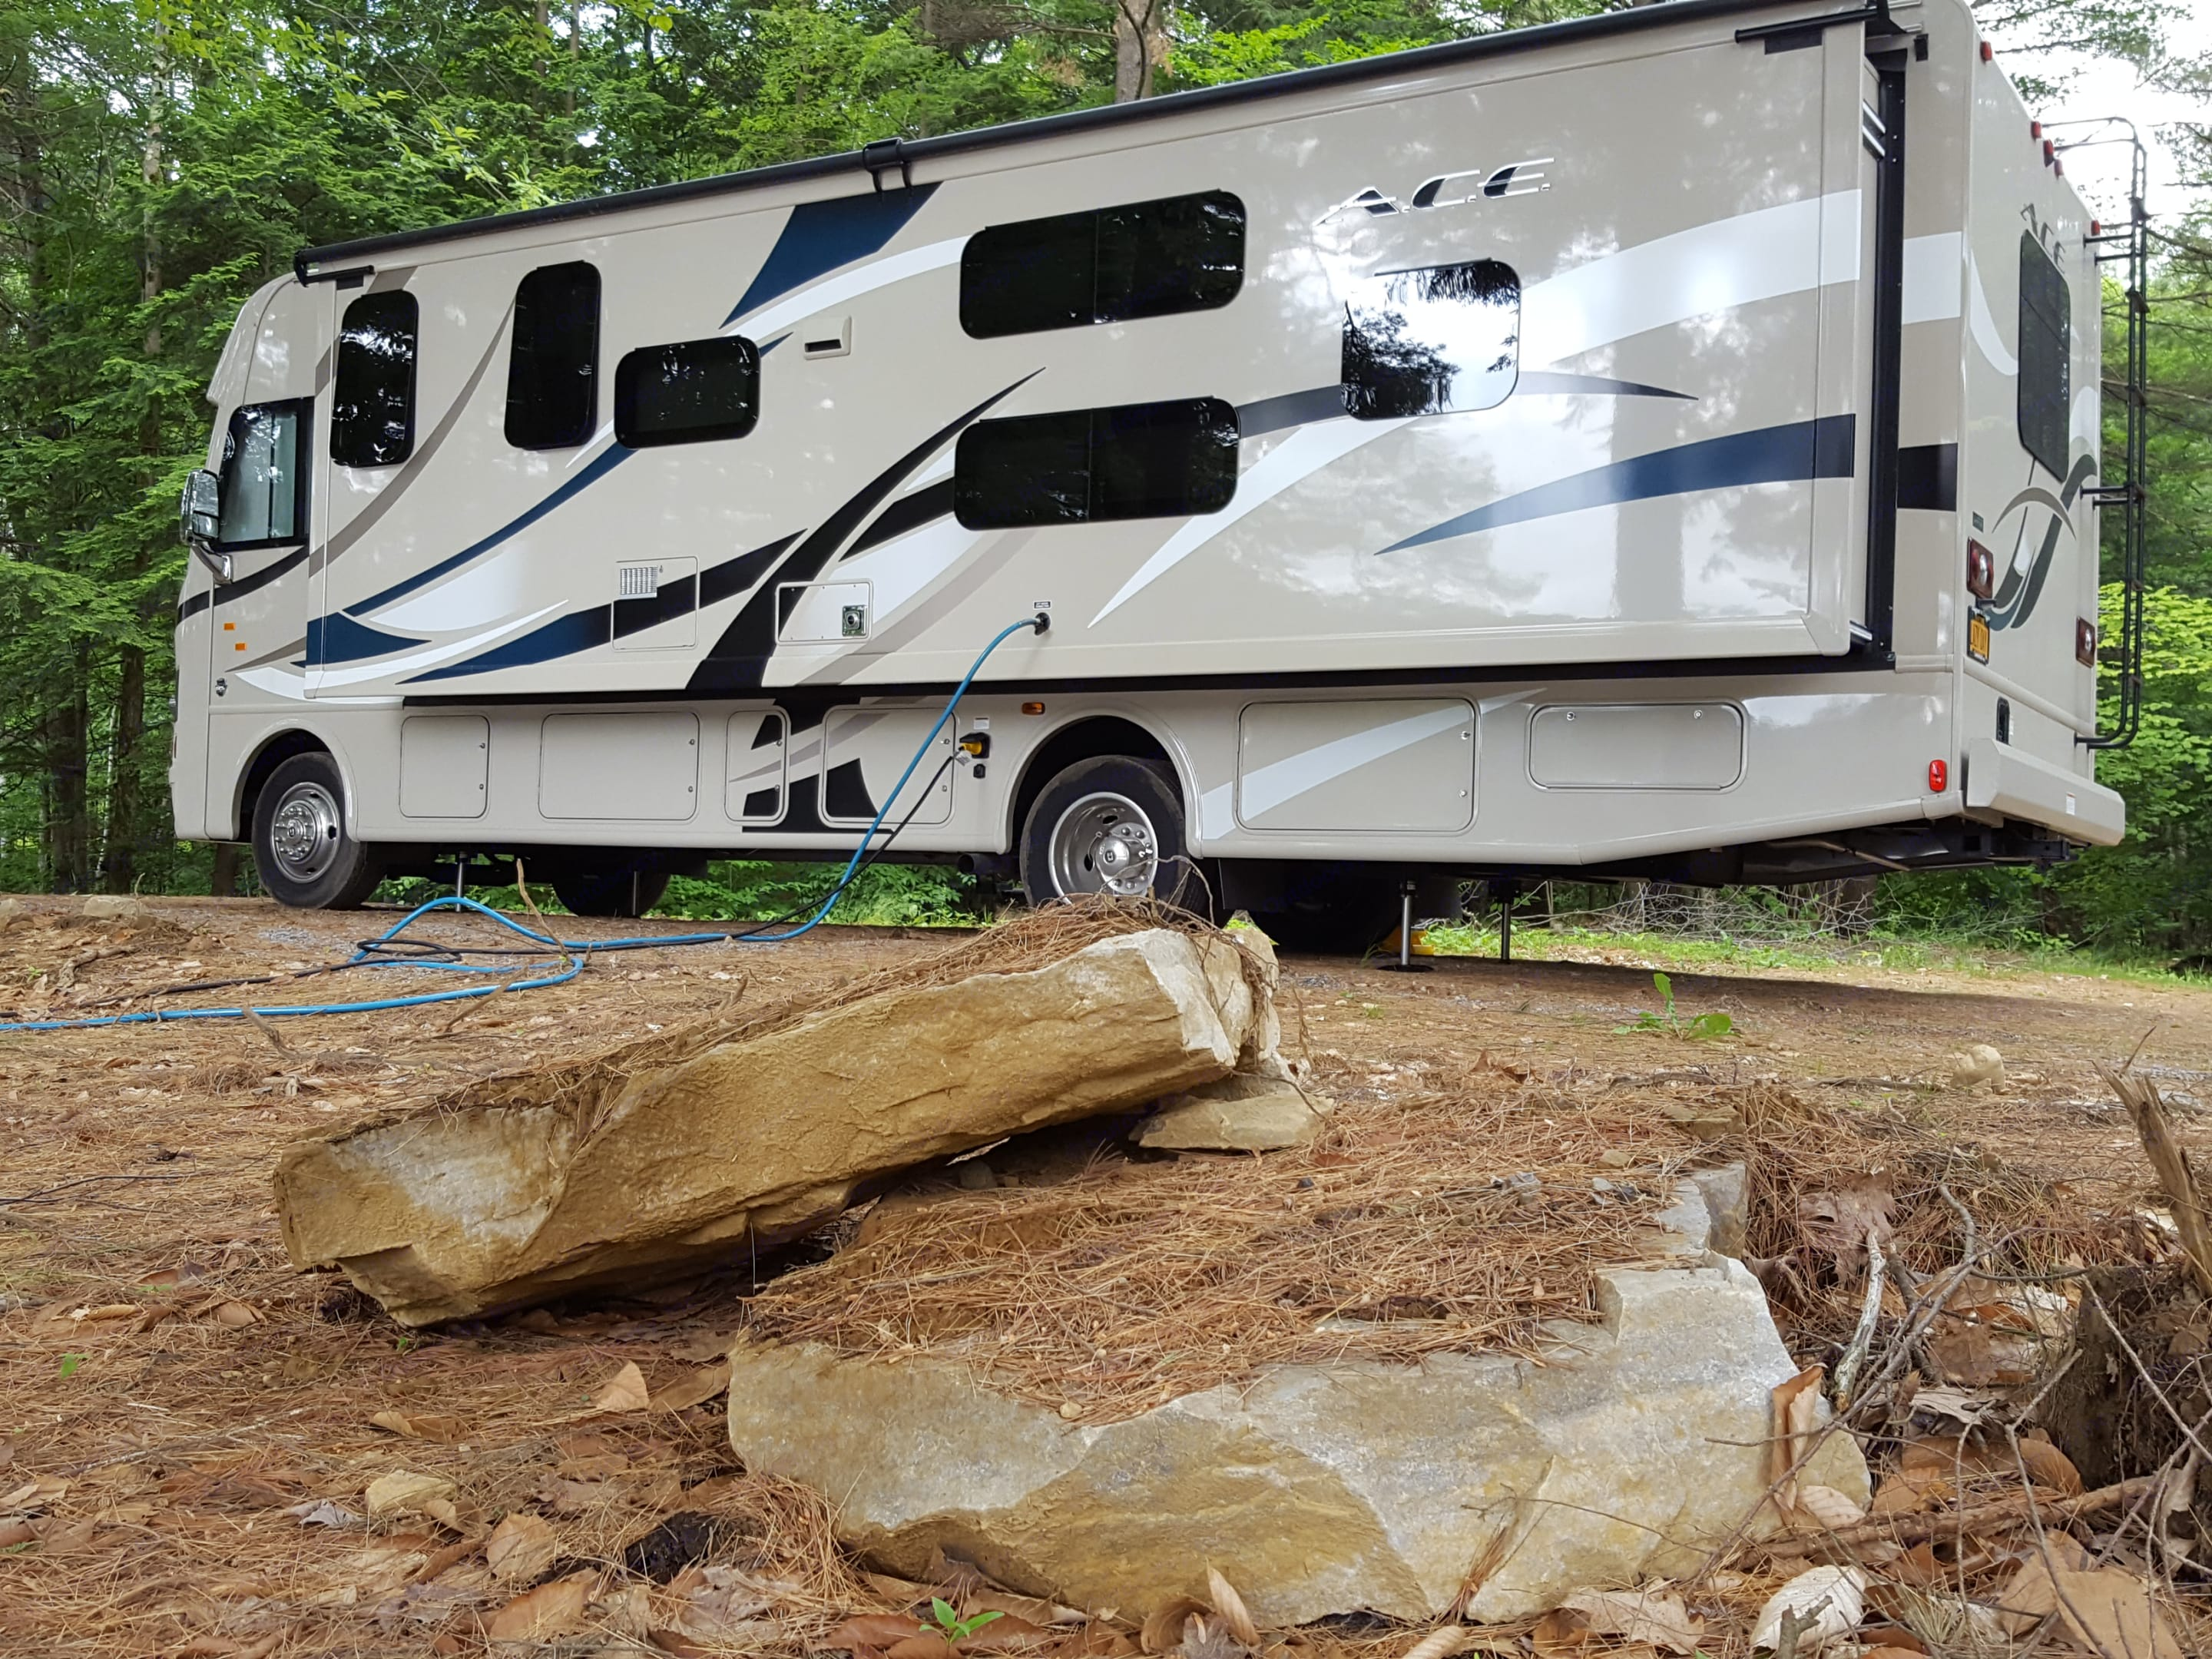 Very easy set up!!! •30-amp Detachable Shoreline Power Cord •Onan® RV QG 4000 Gas Generator •Automatic Leveling Jacks with Touchpad Controls •Black Water Tank Flush •Enclosed Holding Tanks with Heat Pads •Ford® F-53 Chassis •HD-MAX® Exterior with Graphics Package . Thor Motor Coach A.C.E 2017